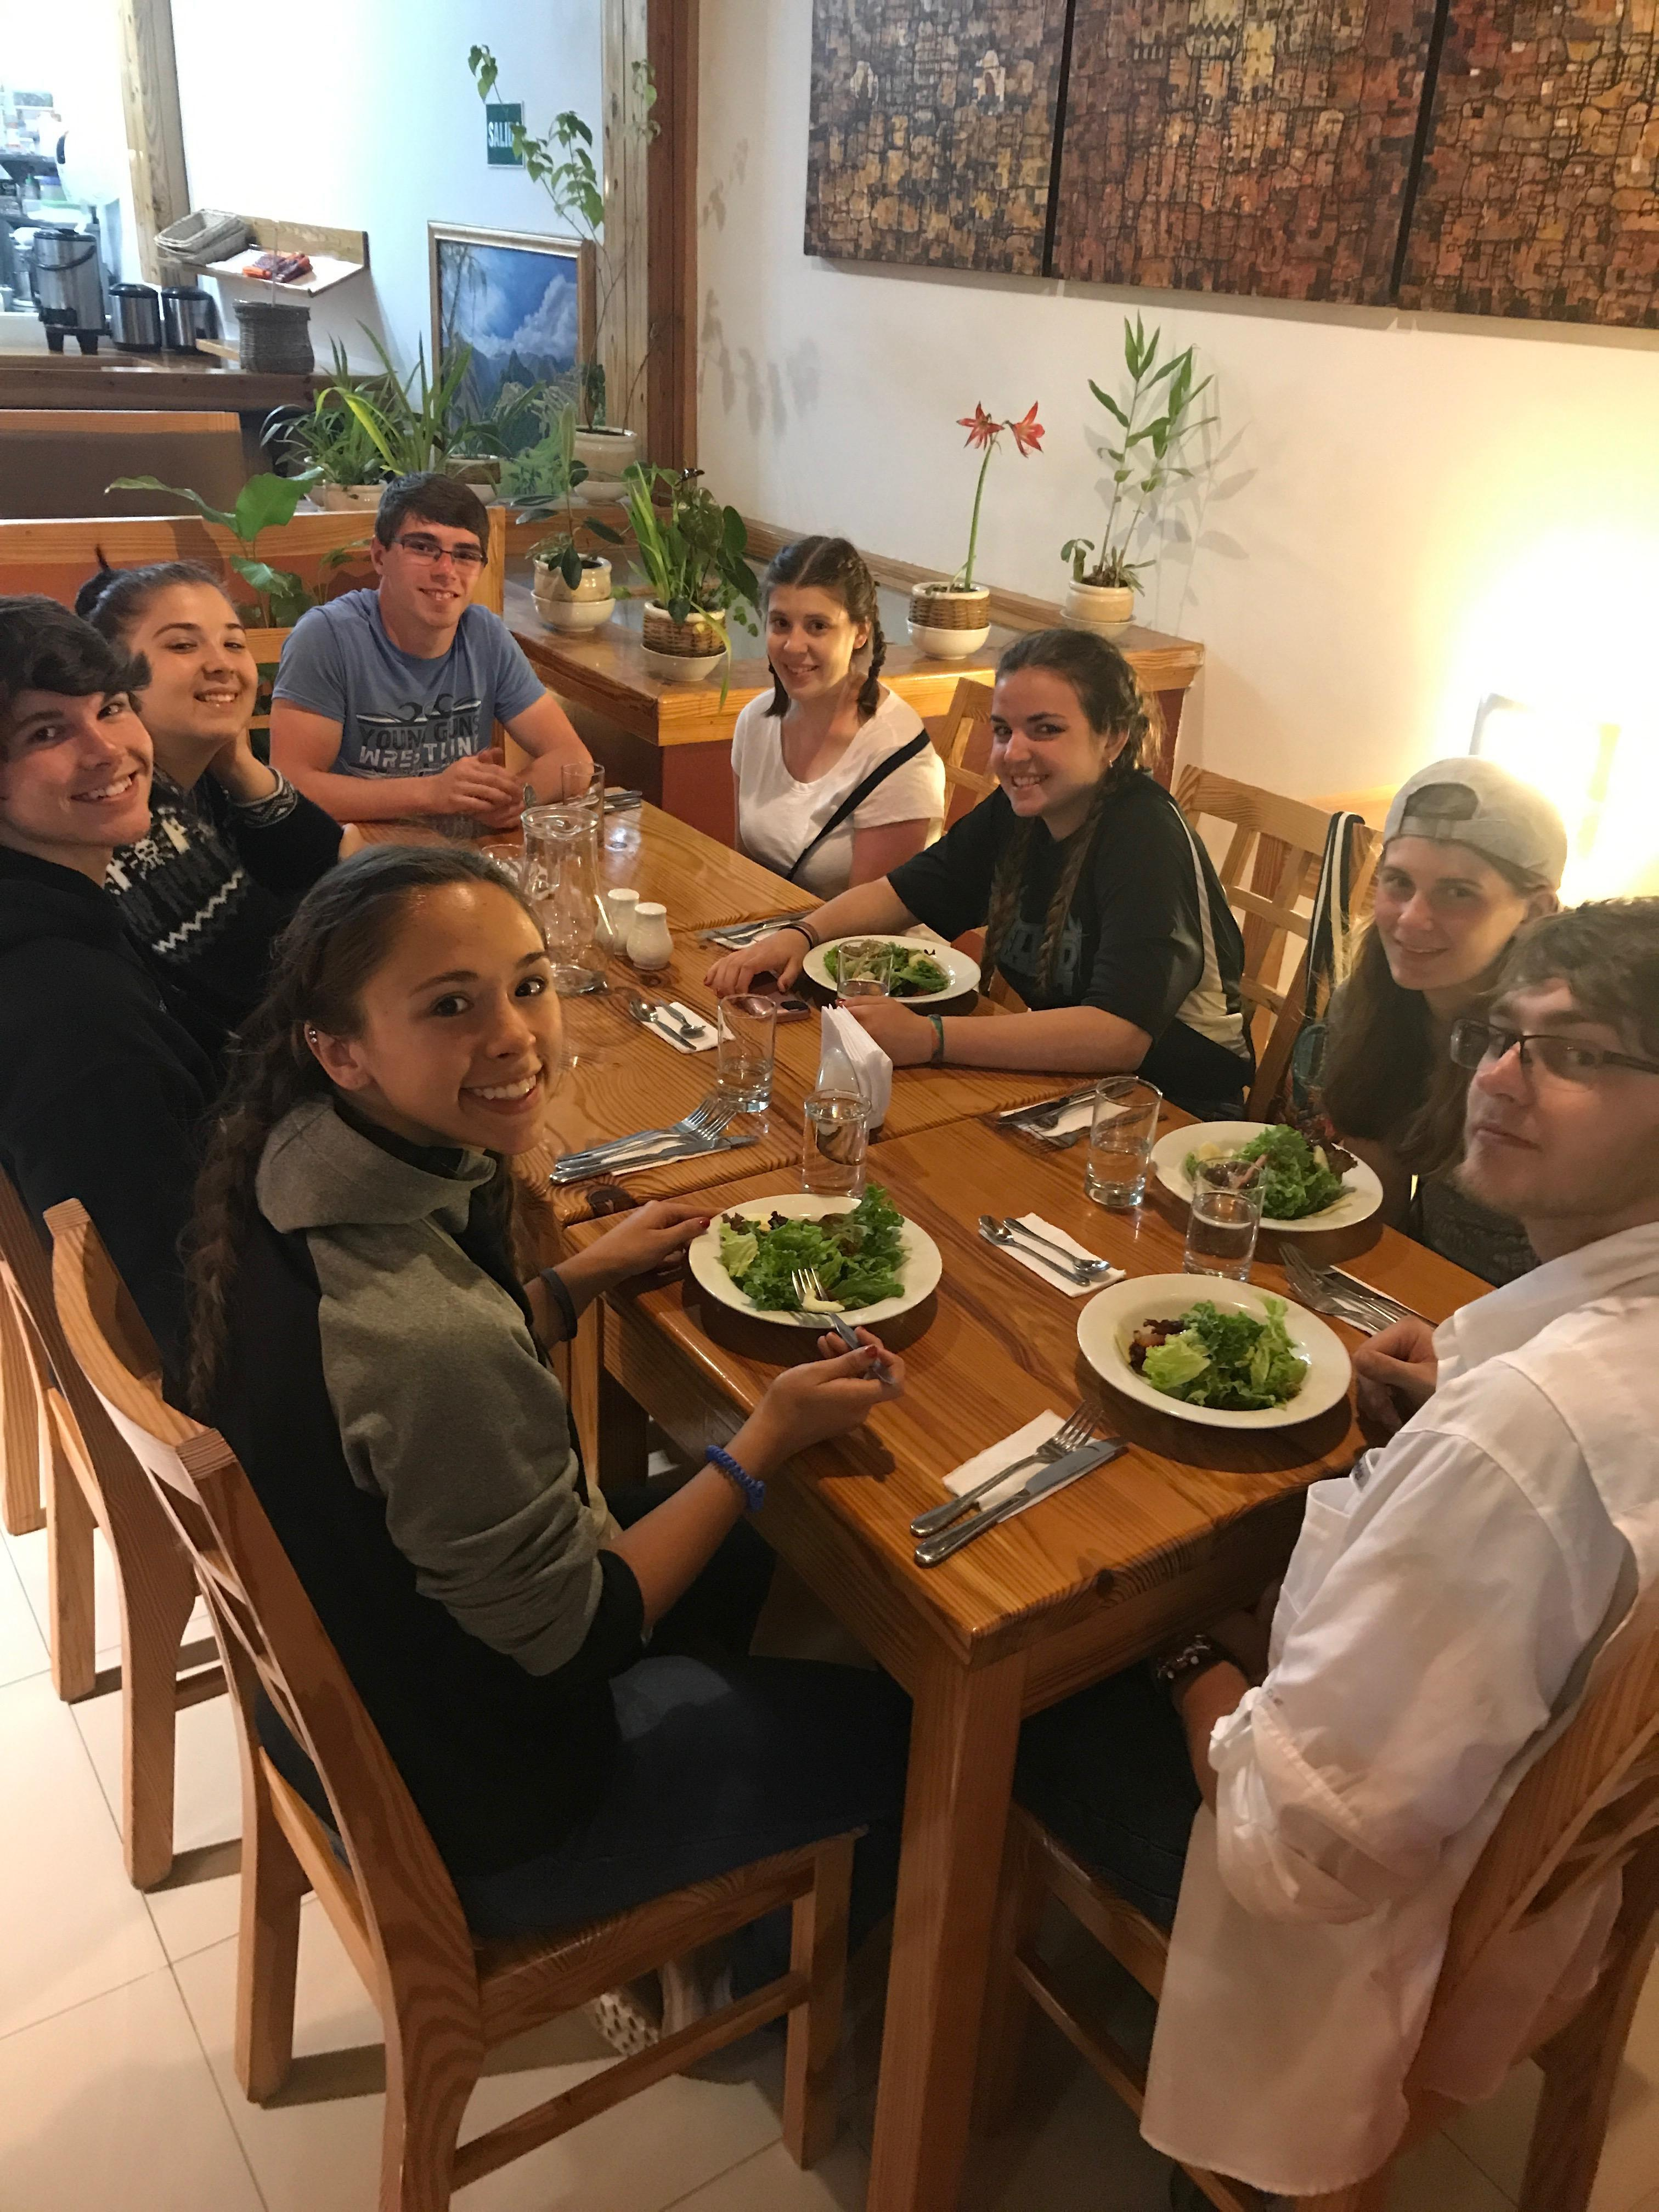 Out to dinner in Perú